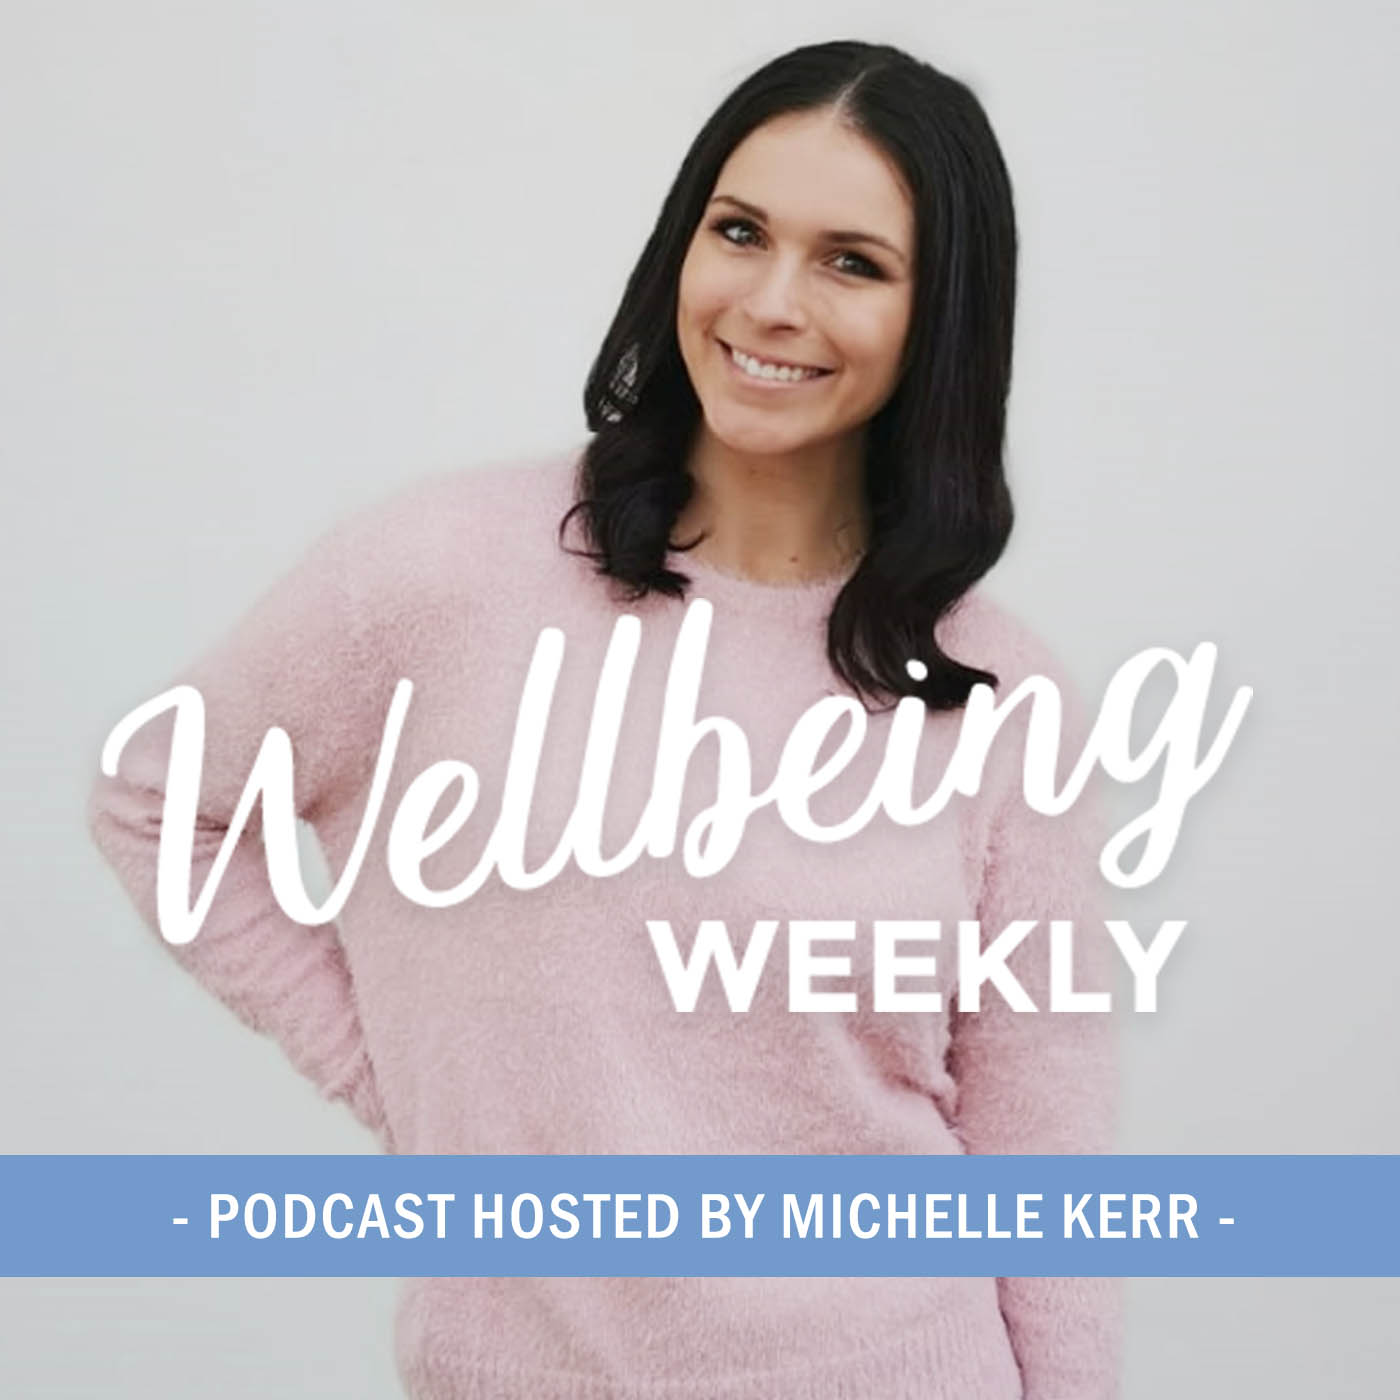 Wellbeing Weekly show art